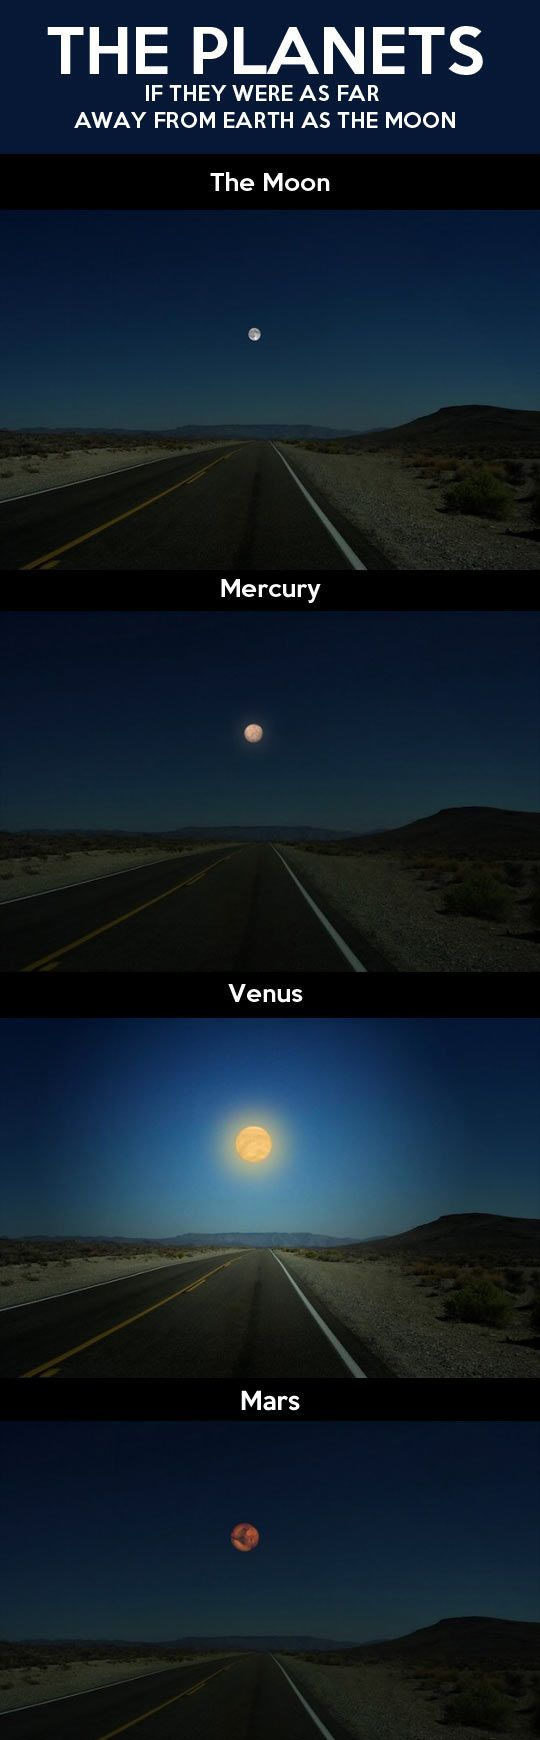 If the planets were as far away from earth as the moon…